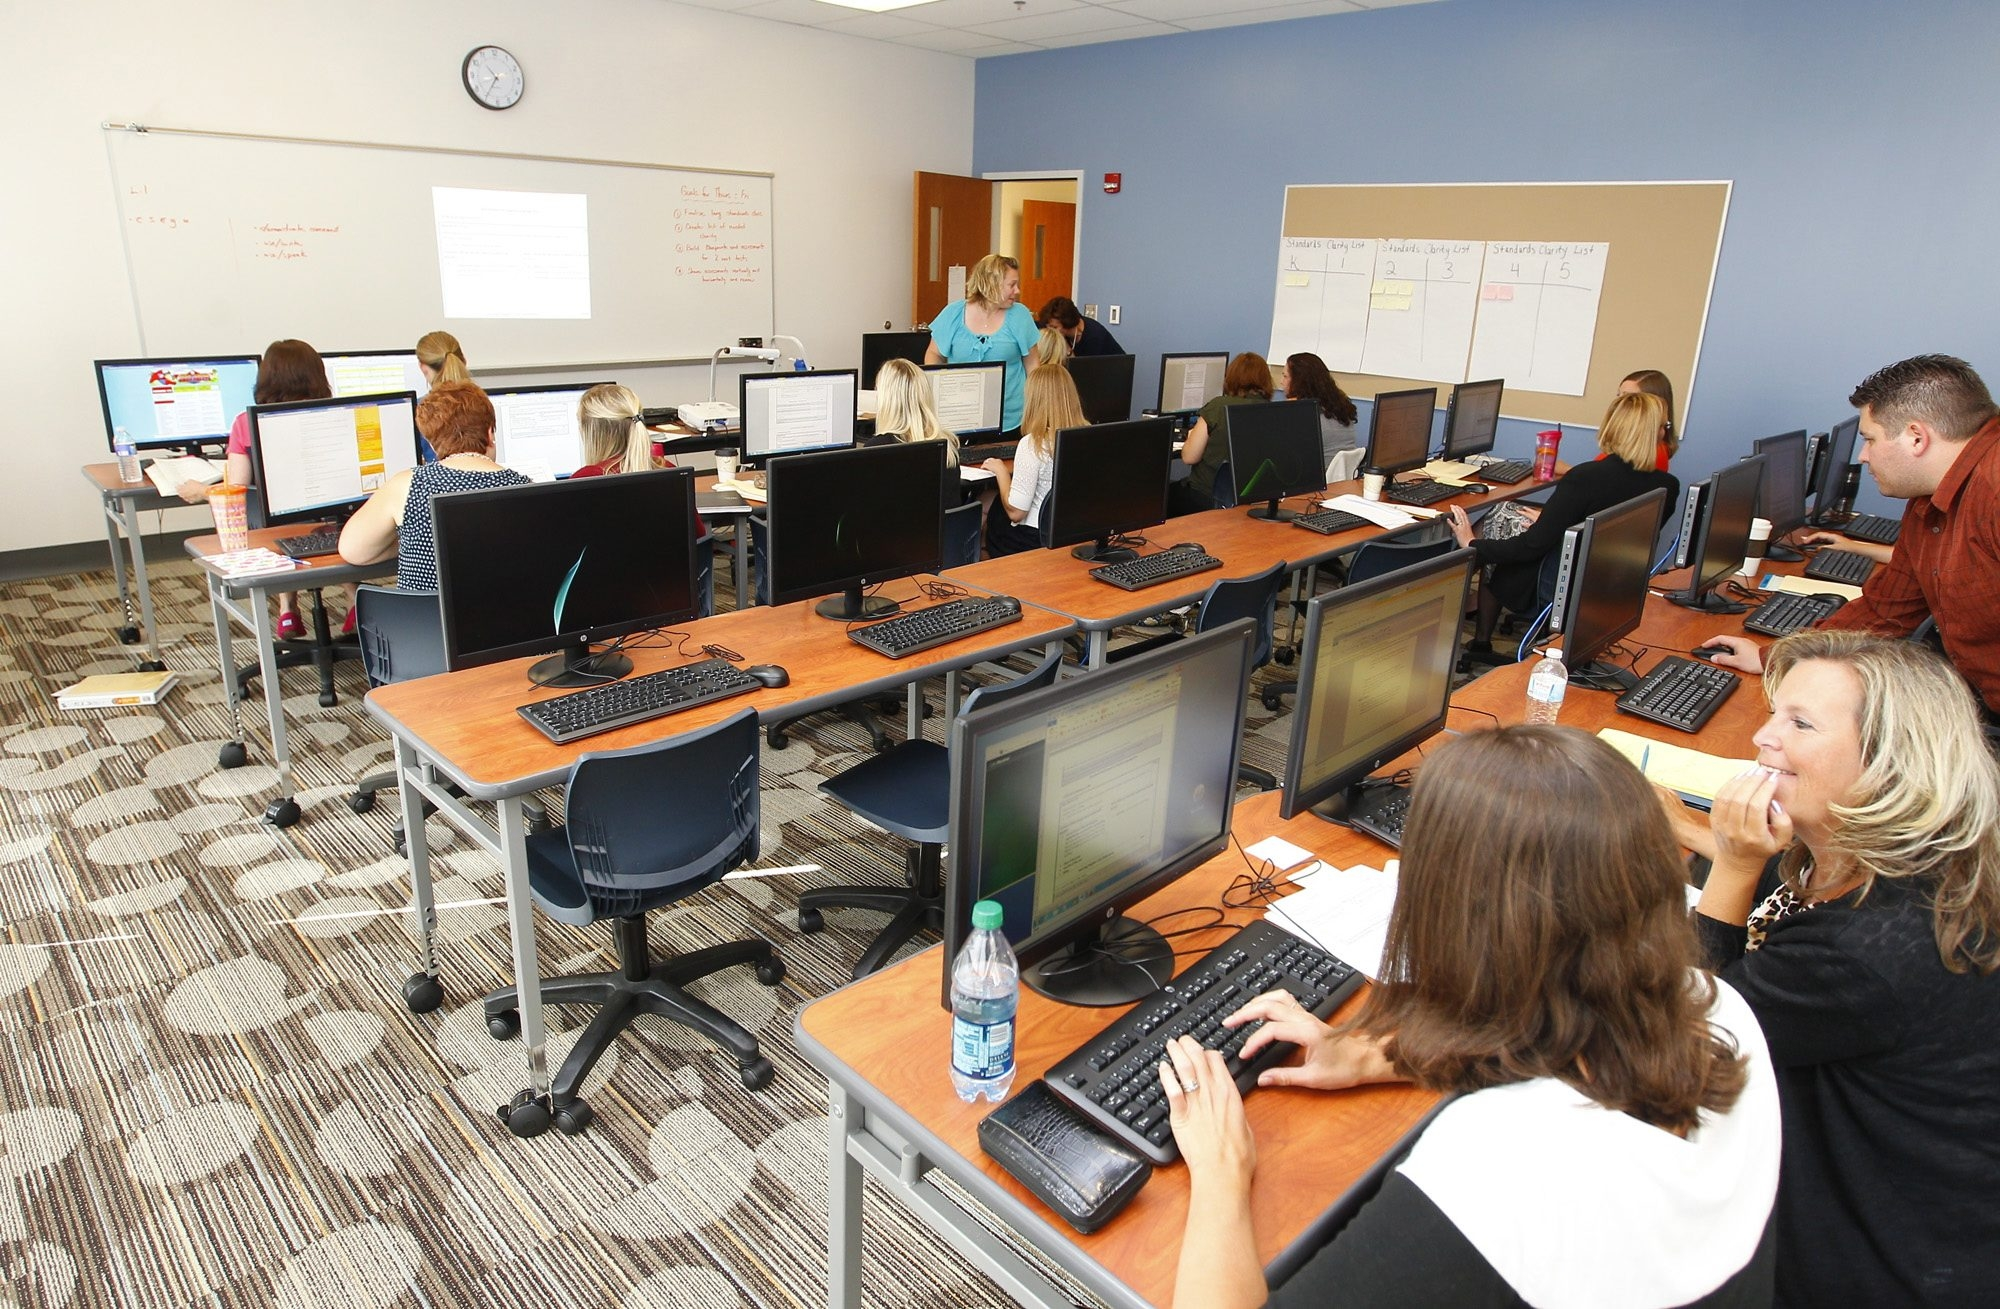 South Buffalo Charter School teachers work on professional development Thursday in a computer lab as the South Ogden Street building debuts before Monday's first day of class for 800 students.